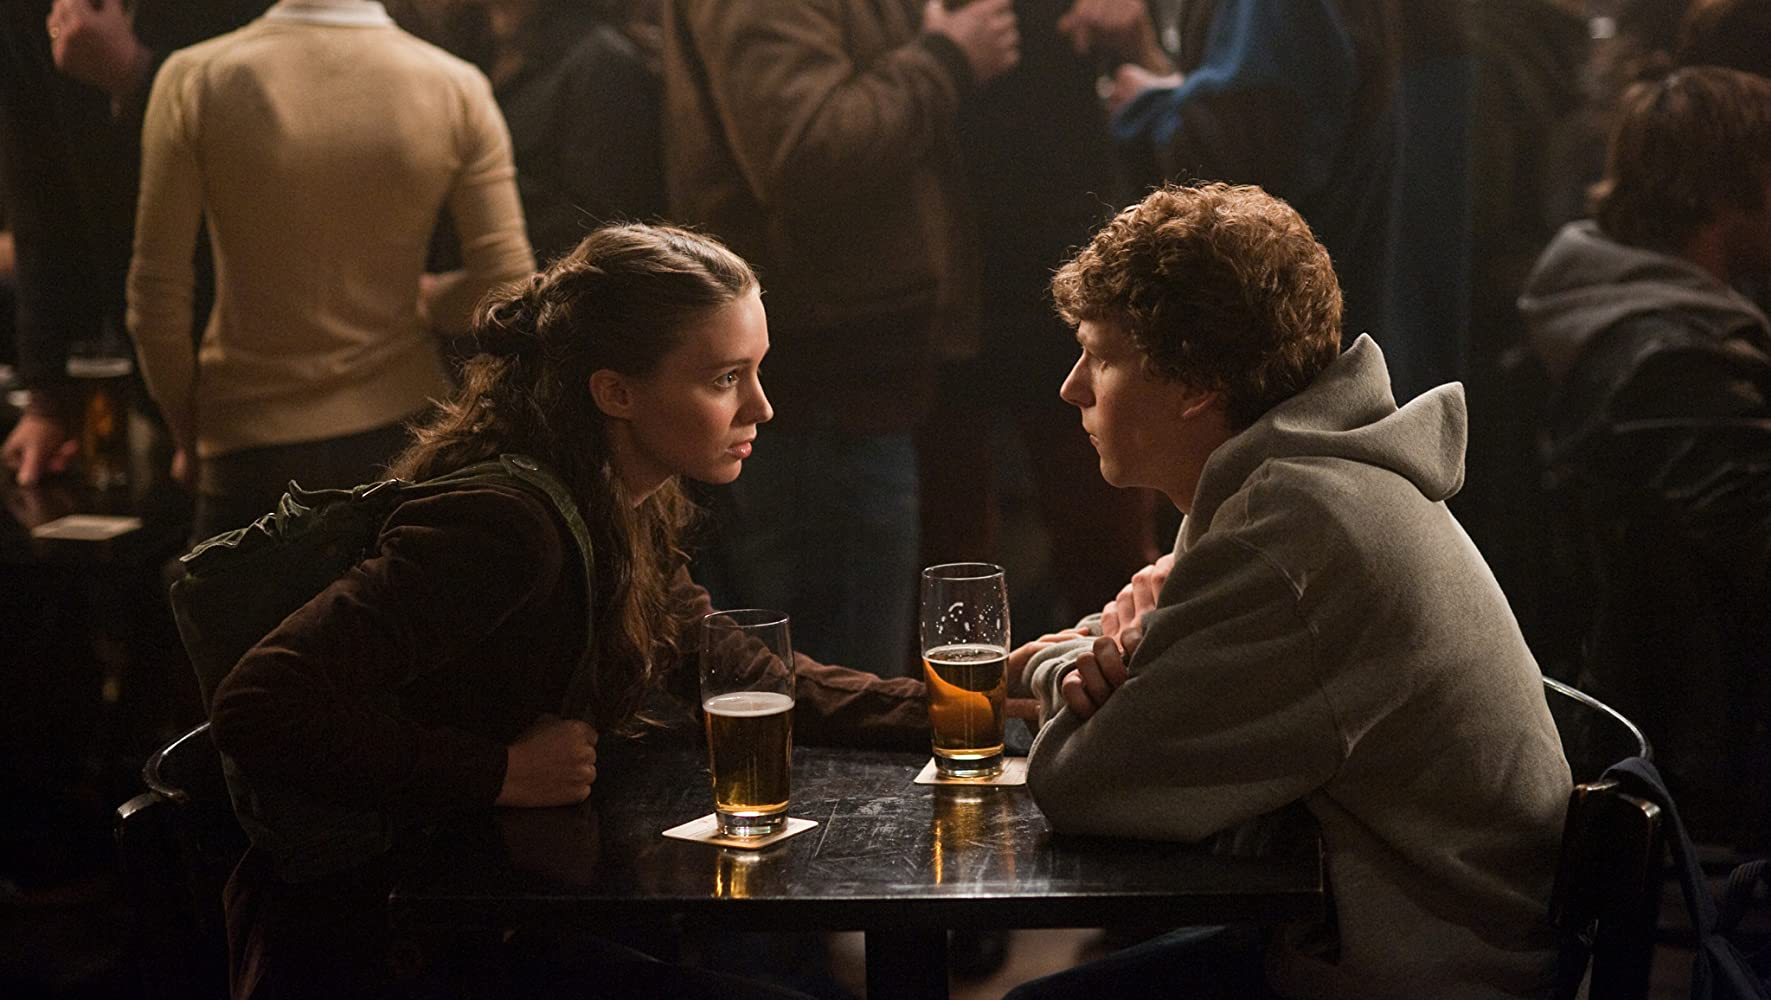 Jesse Eisenberg and Rooney Mara in The Social Network (2010)